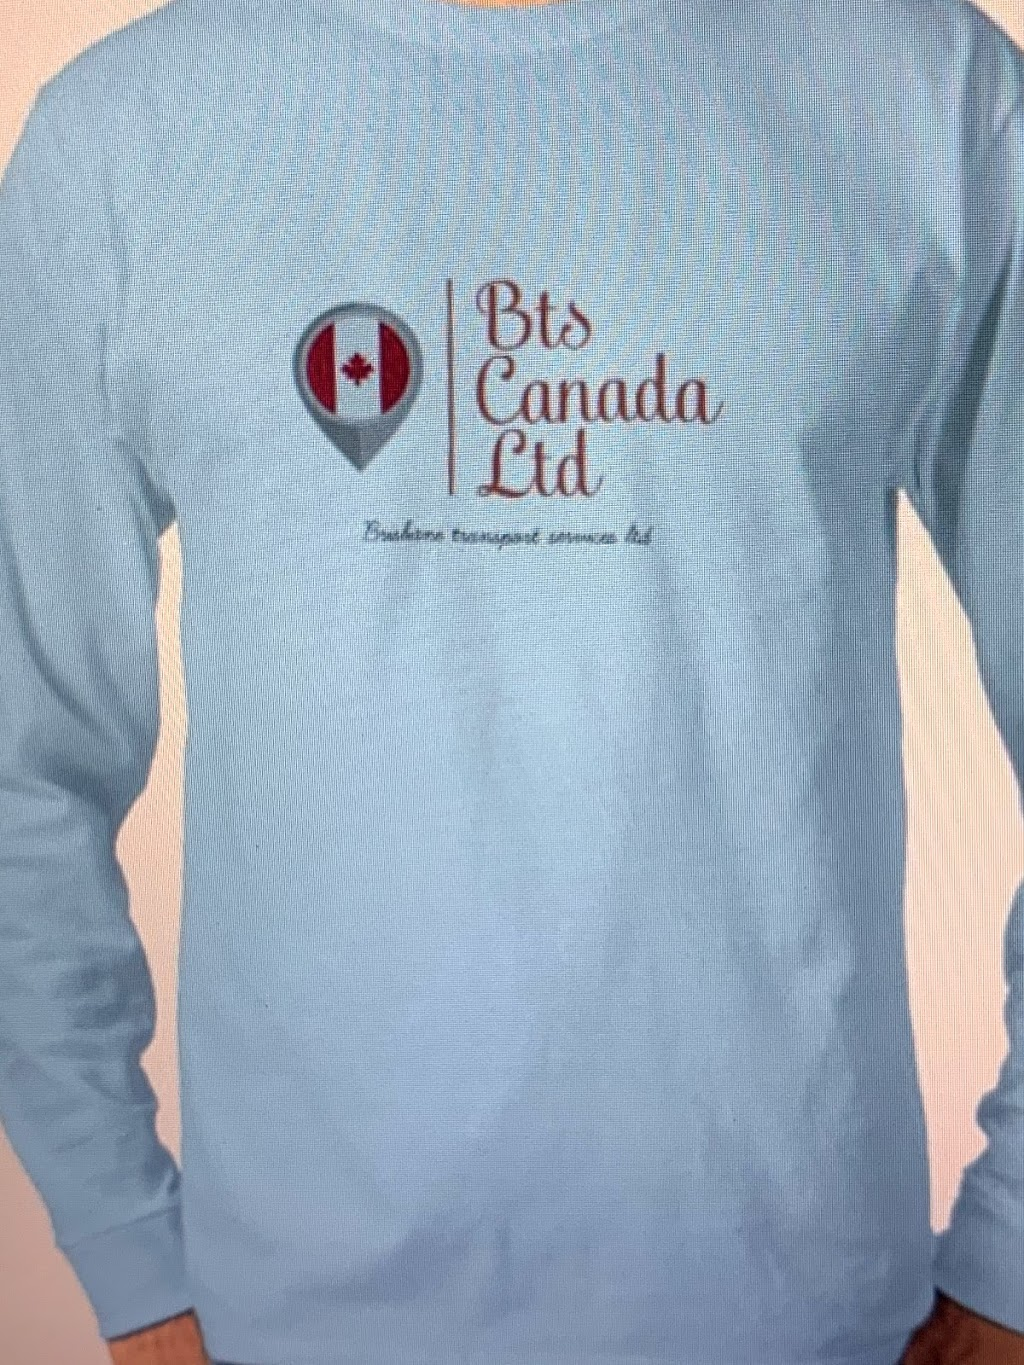 BTS CANADA LTD | point of interest | 5 Sussexvale Dr, Brampton, ON L6R 3S1, Canada | 4164572344 OR +1 416-457-2344